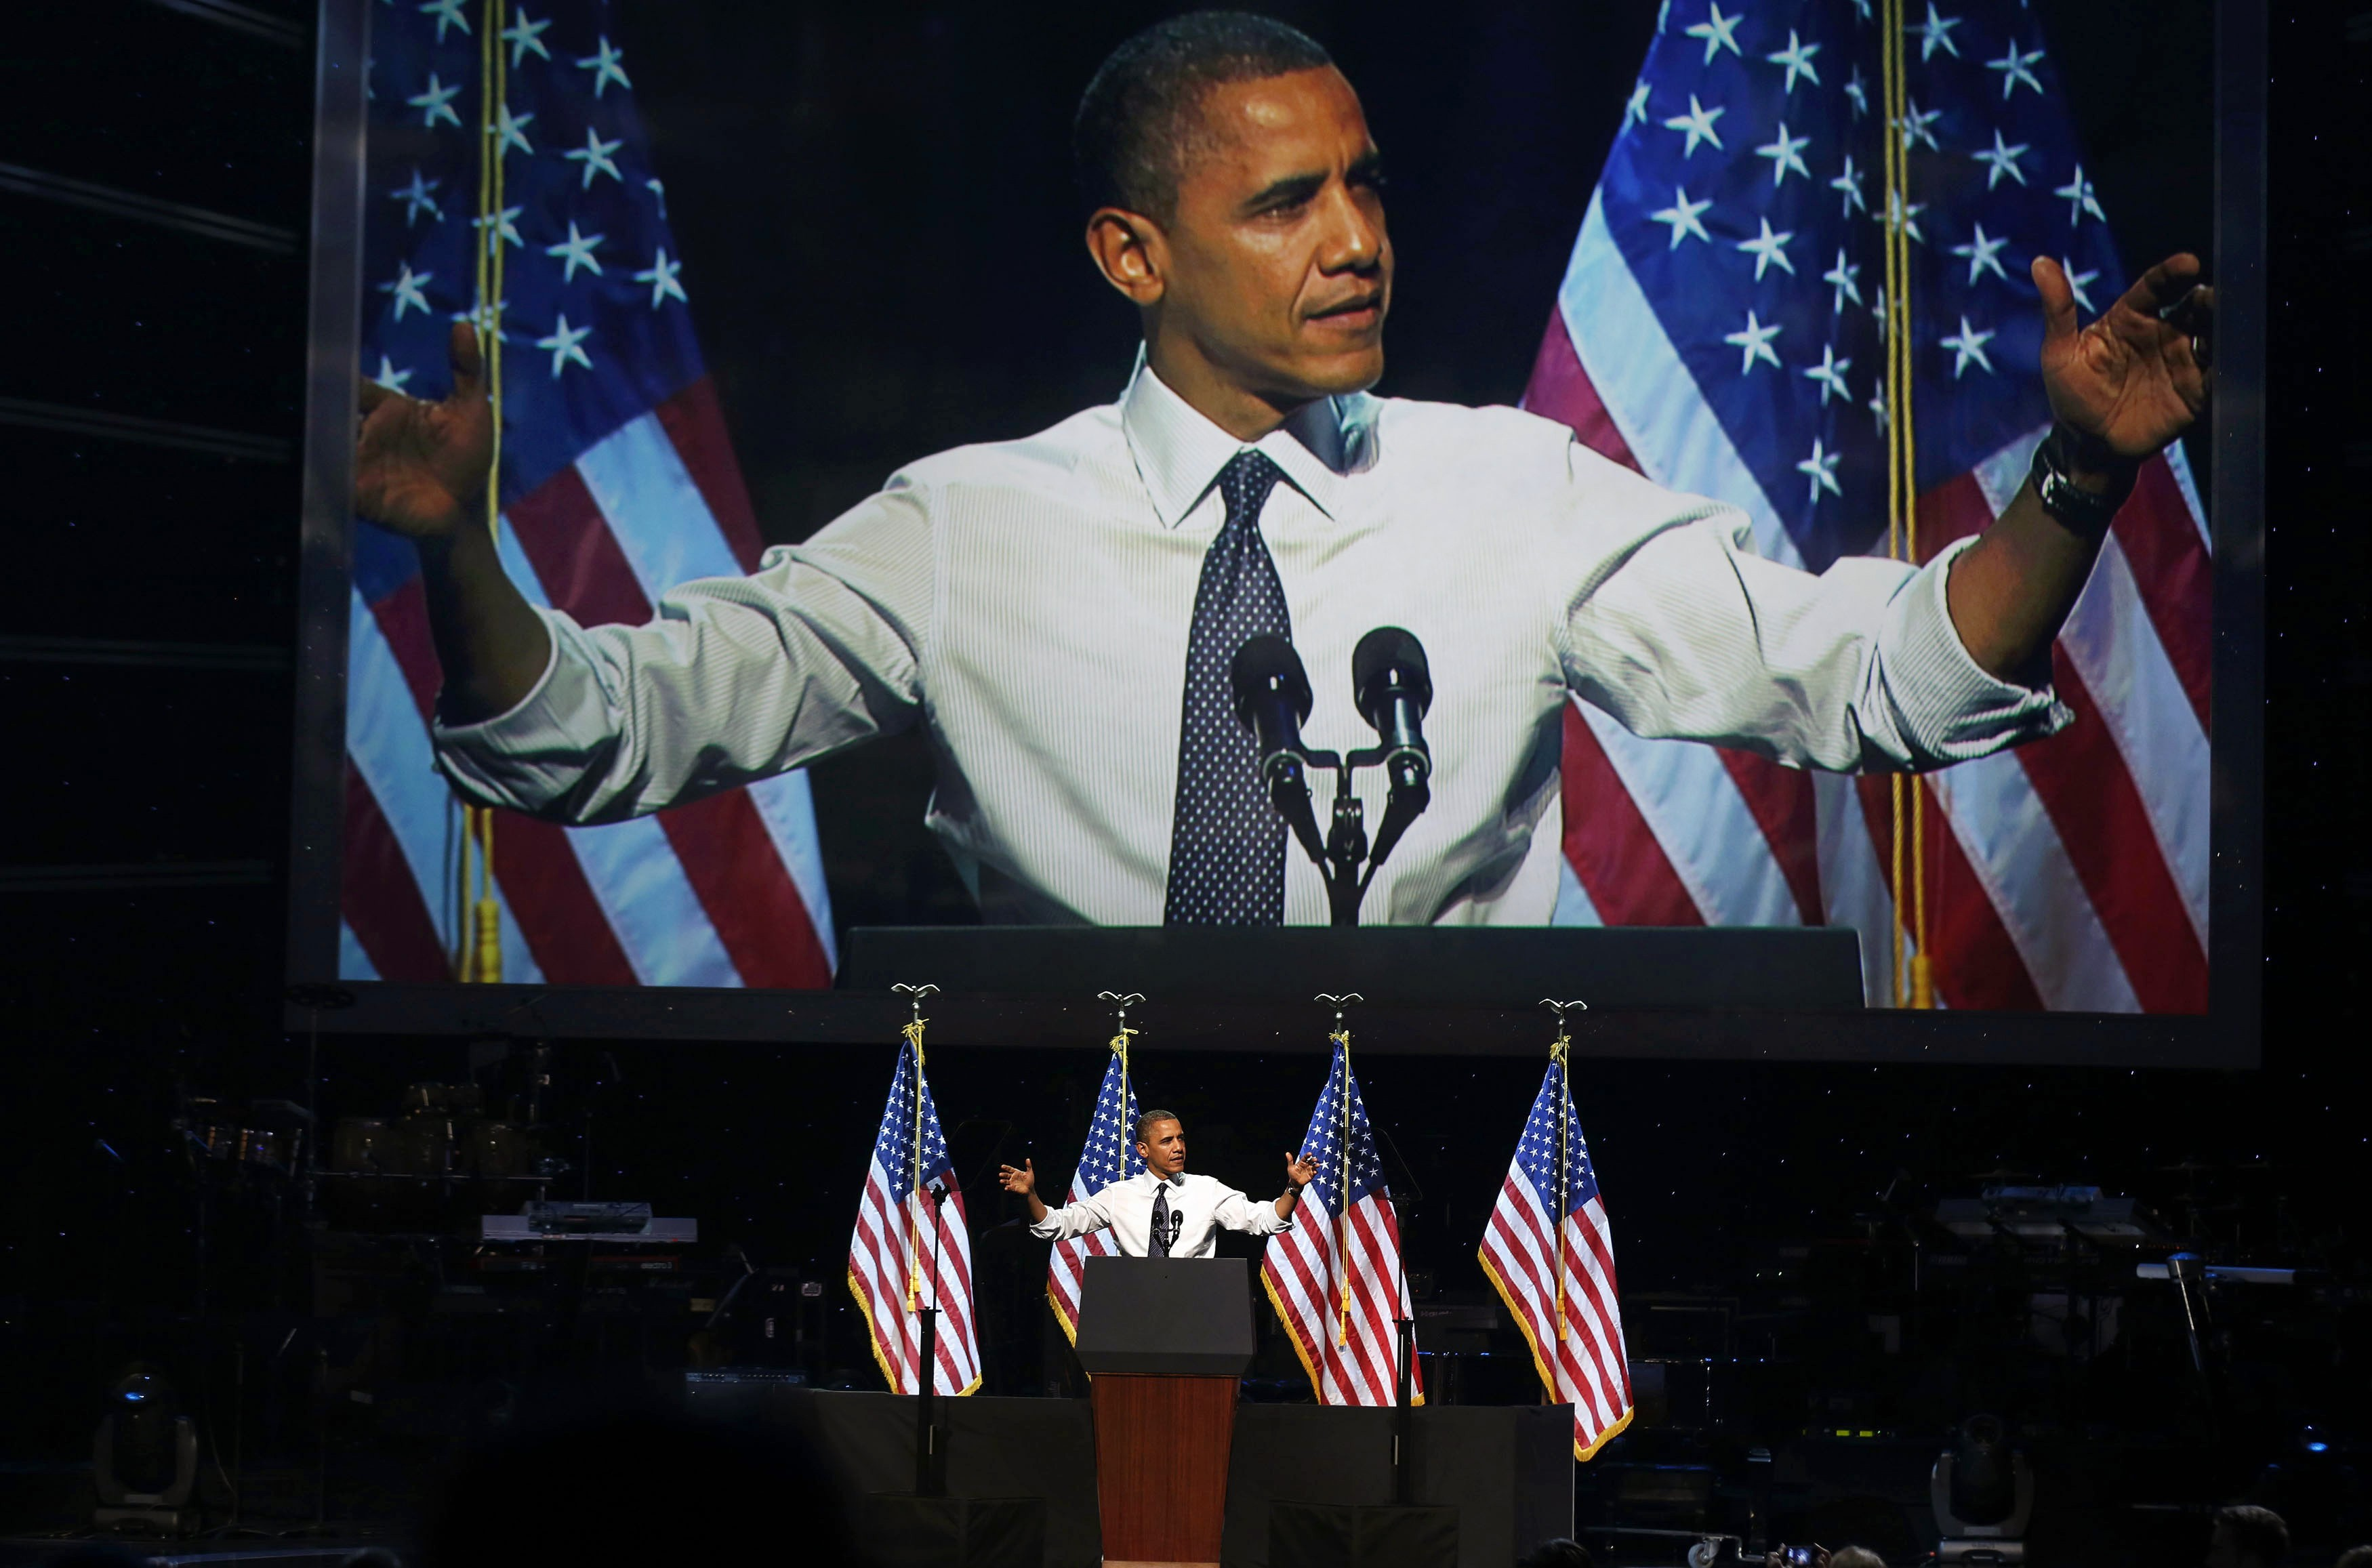 President Obama speaks at a campaign event in Los Angeles. (Larry Downing/Reuters)